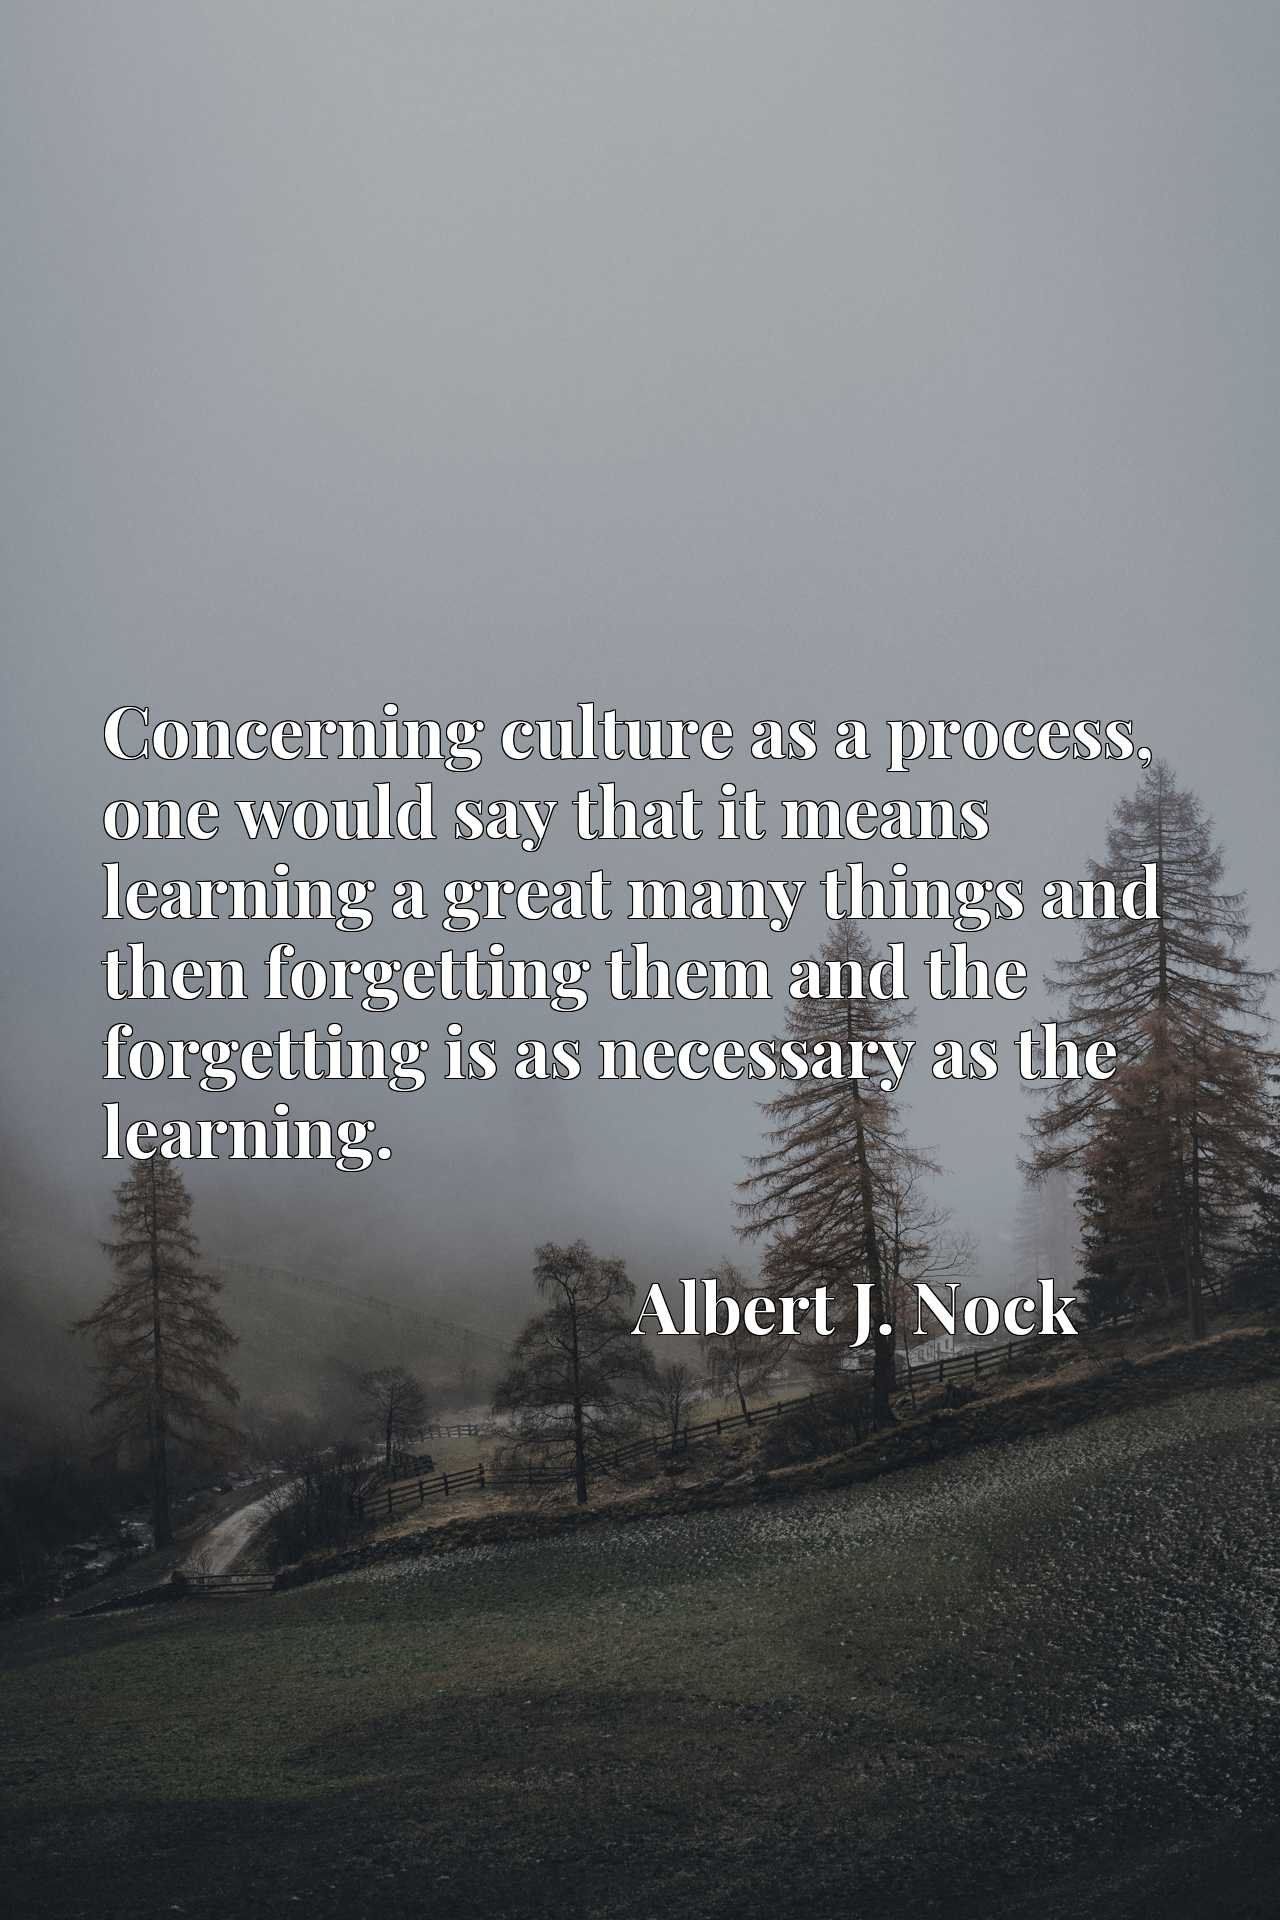 Concerning culture as a process, one would say that it means learning a great many things and then forgetting them and the forgetting is as necessary as the learning.